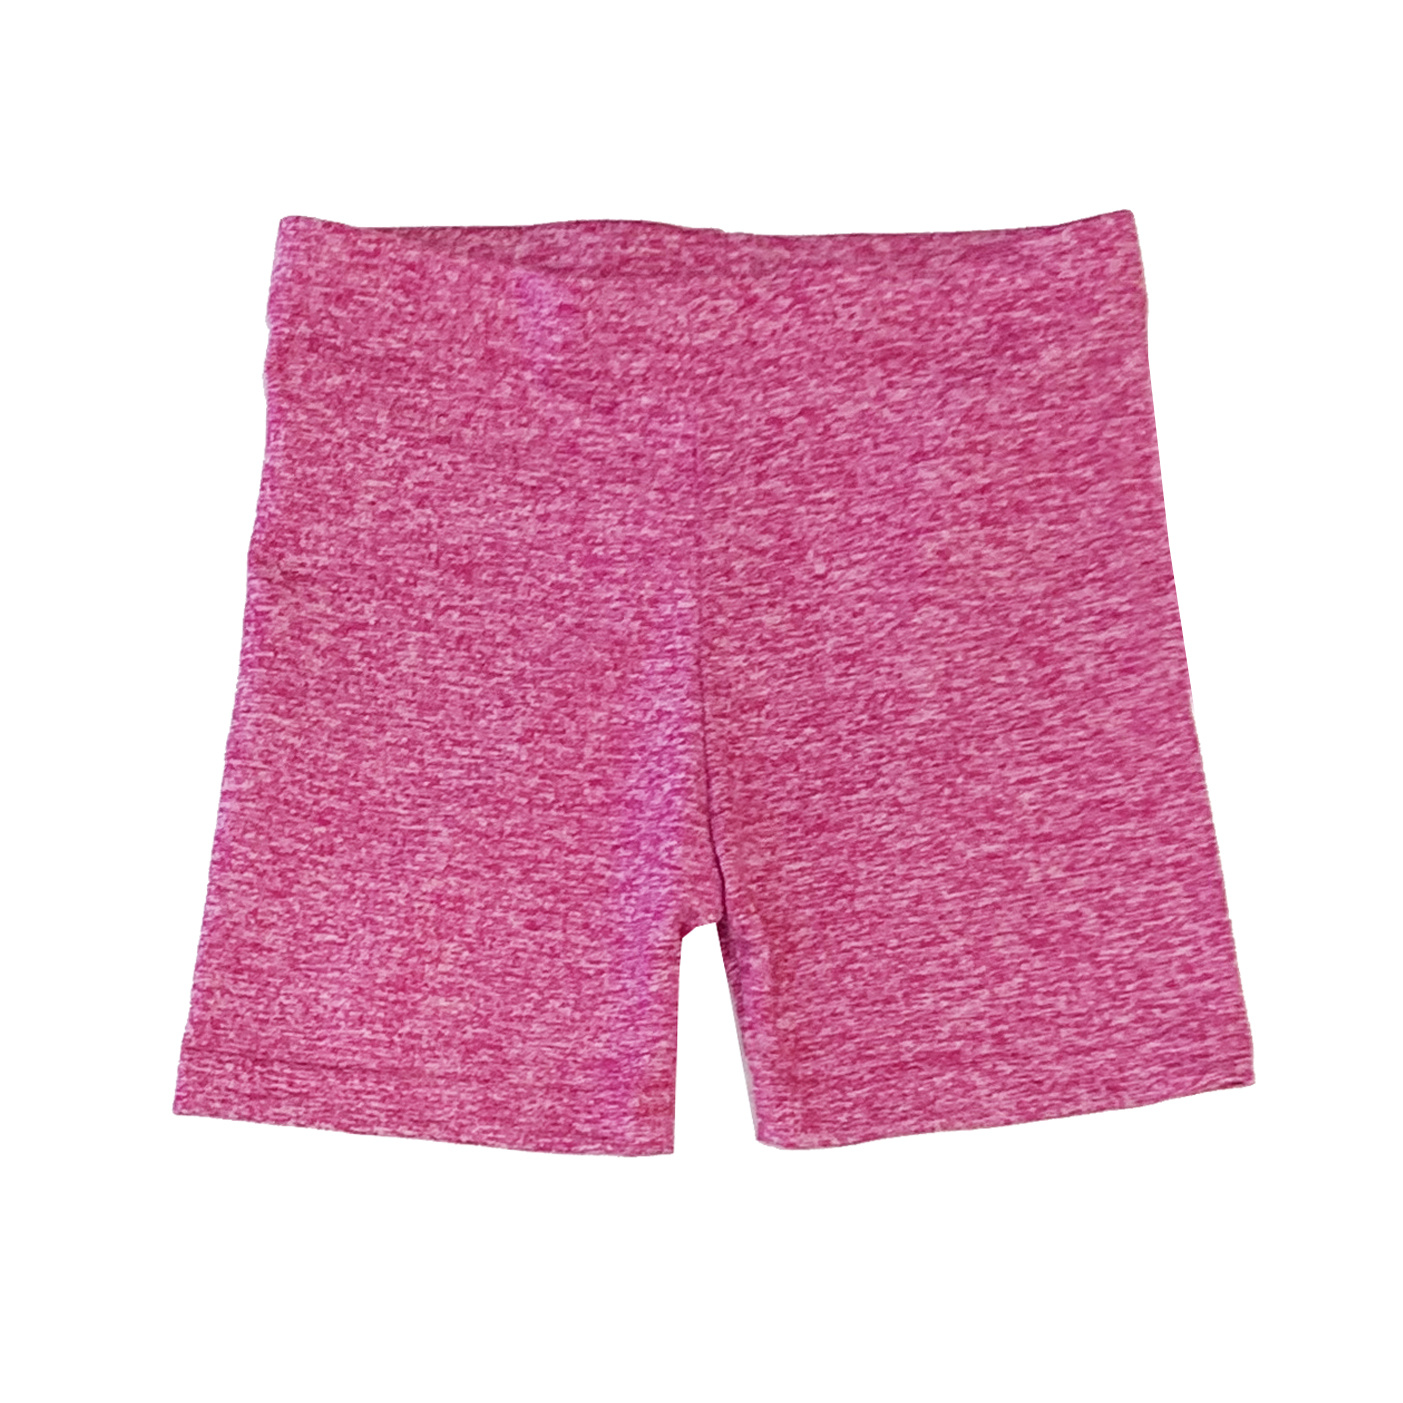 Dori Creations Pink/White Heathered Bike Short